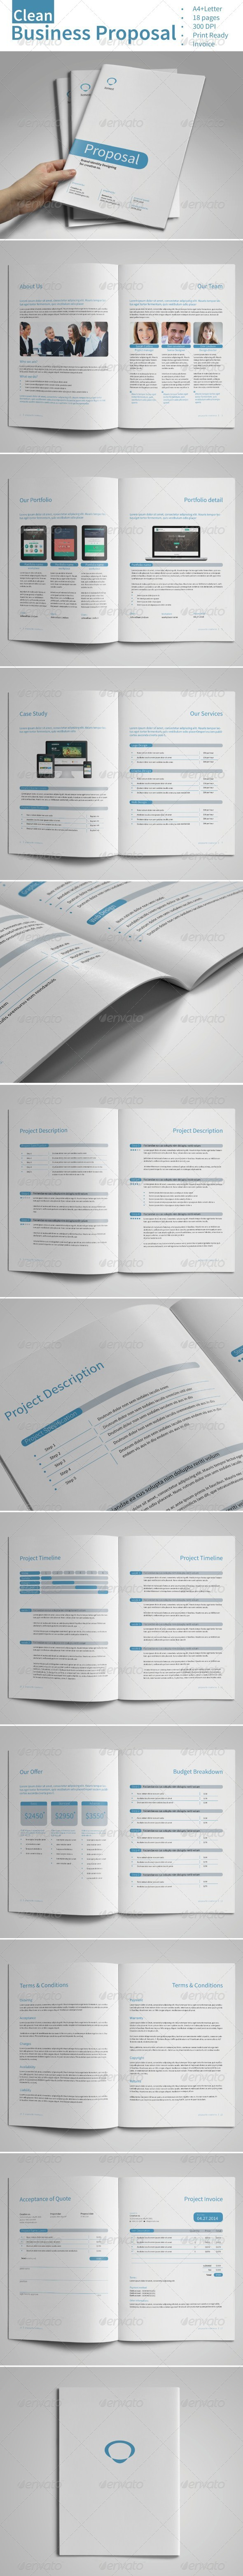 GraphicRiver Clean Business Proposal Vol.2 7279059